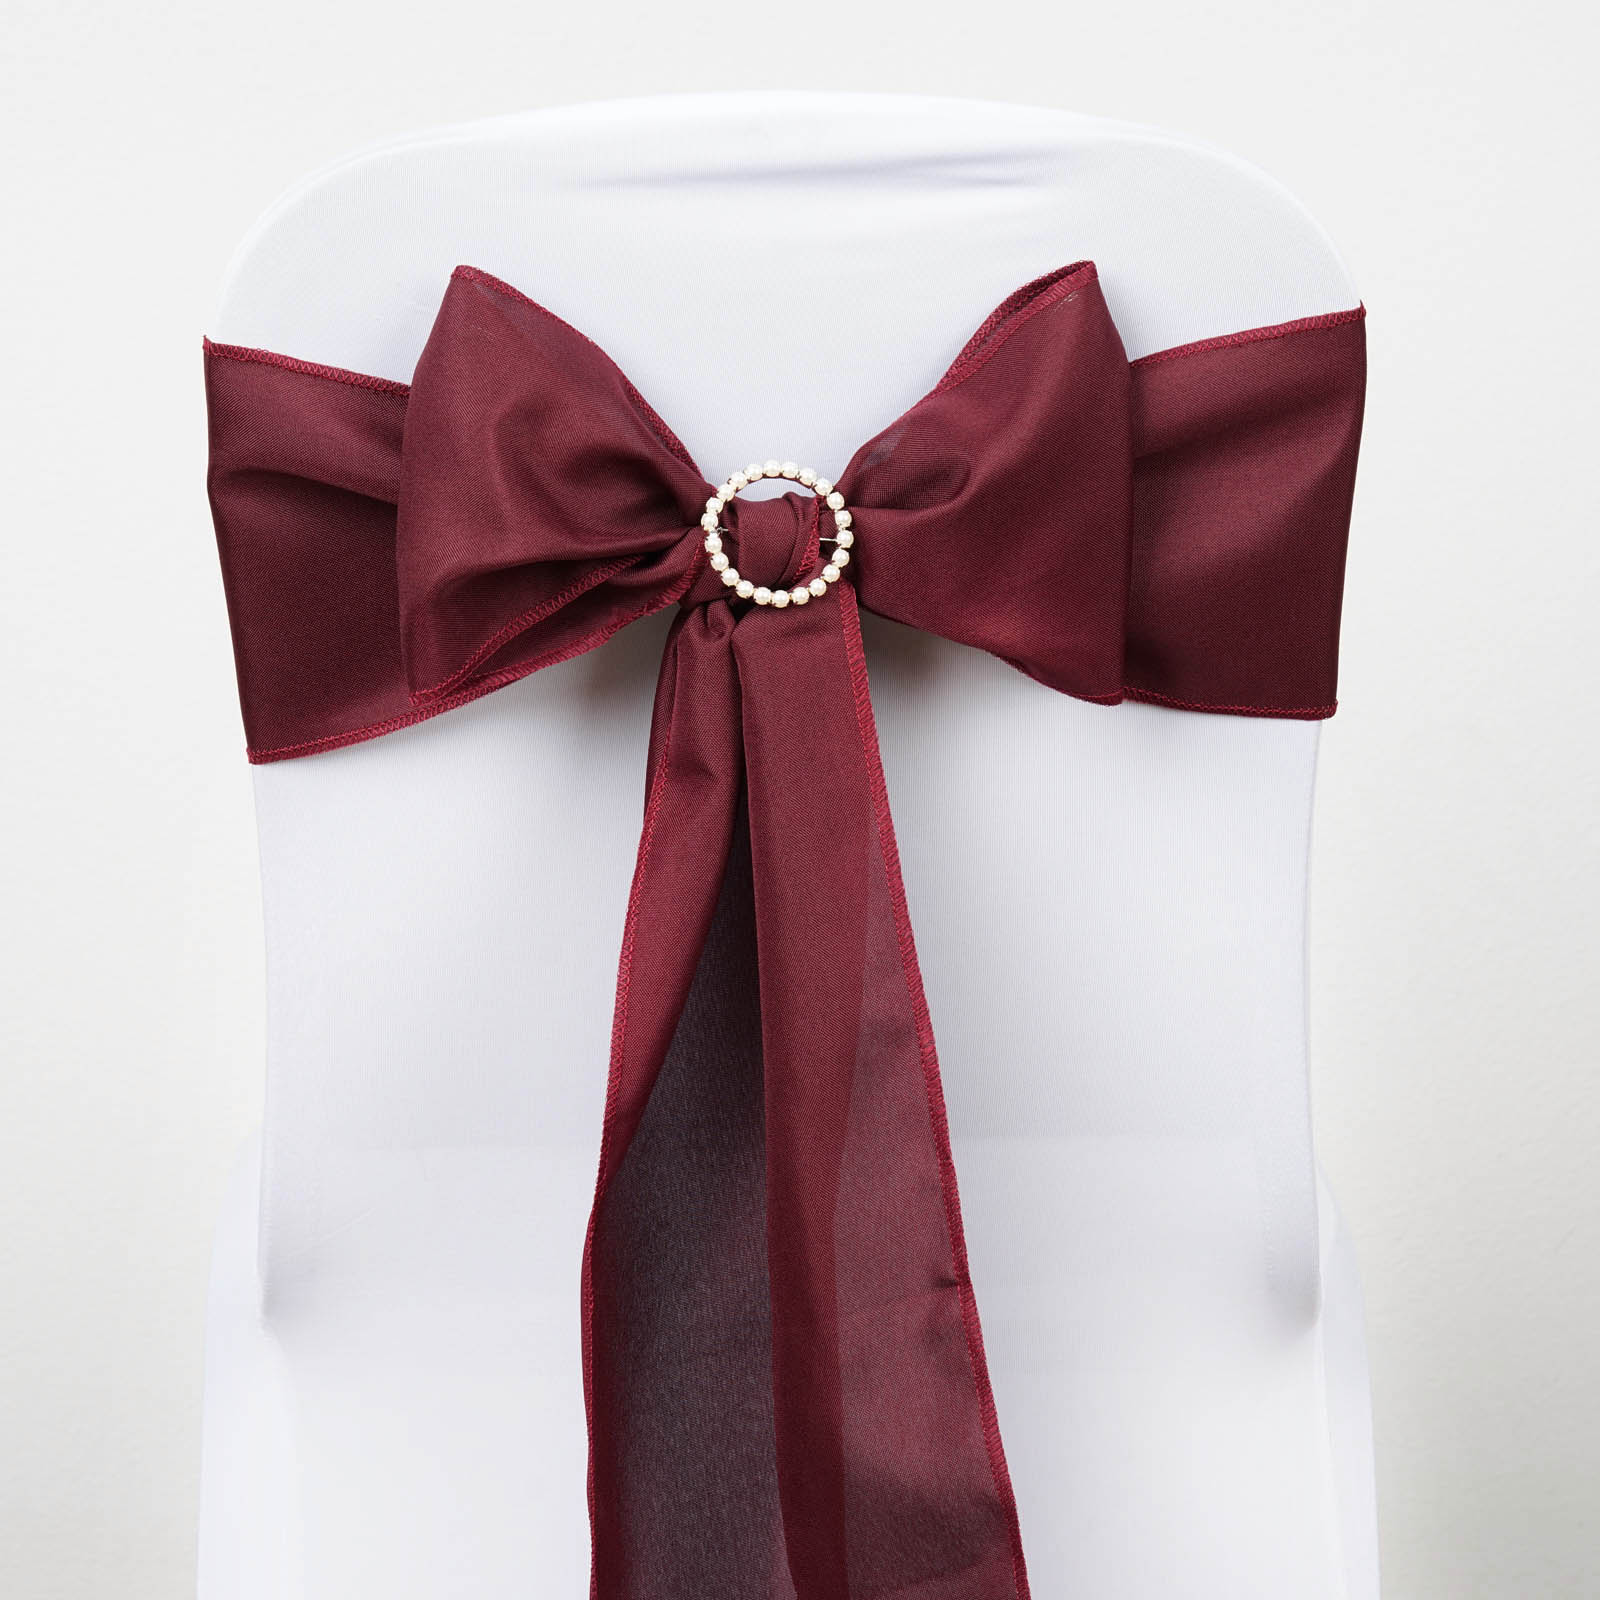 polyester chair sashes wholesale 1950 kitchen table and chairs bows ties wedding reception